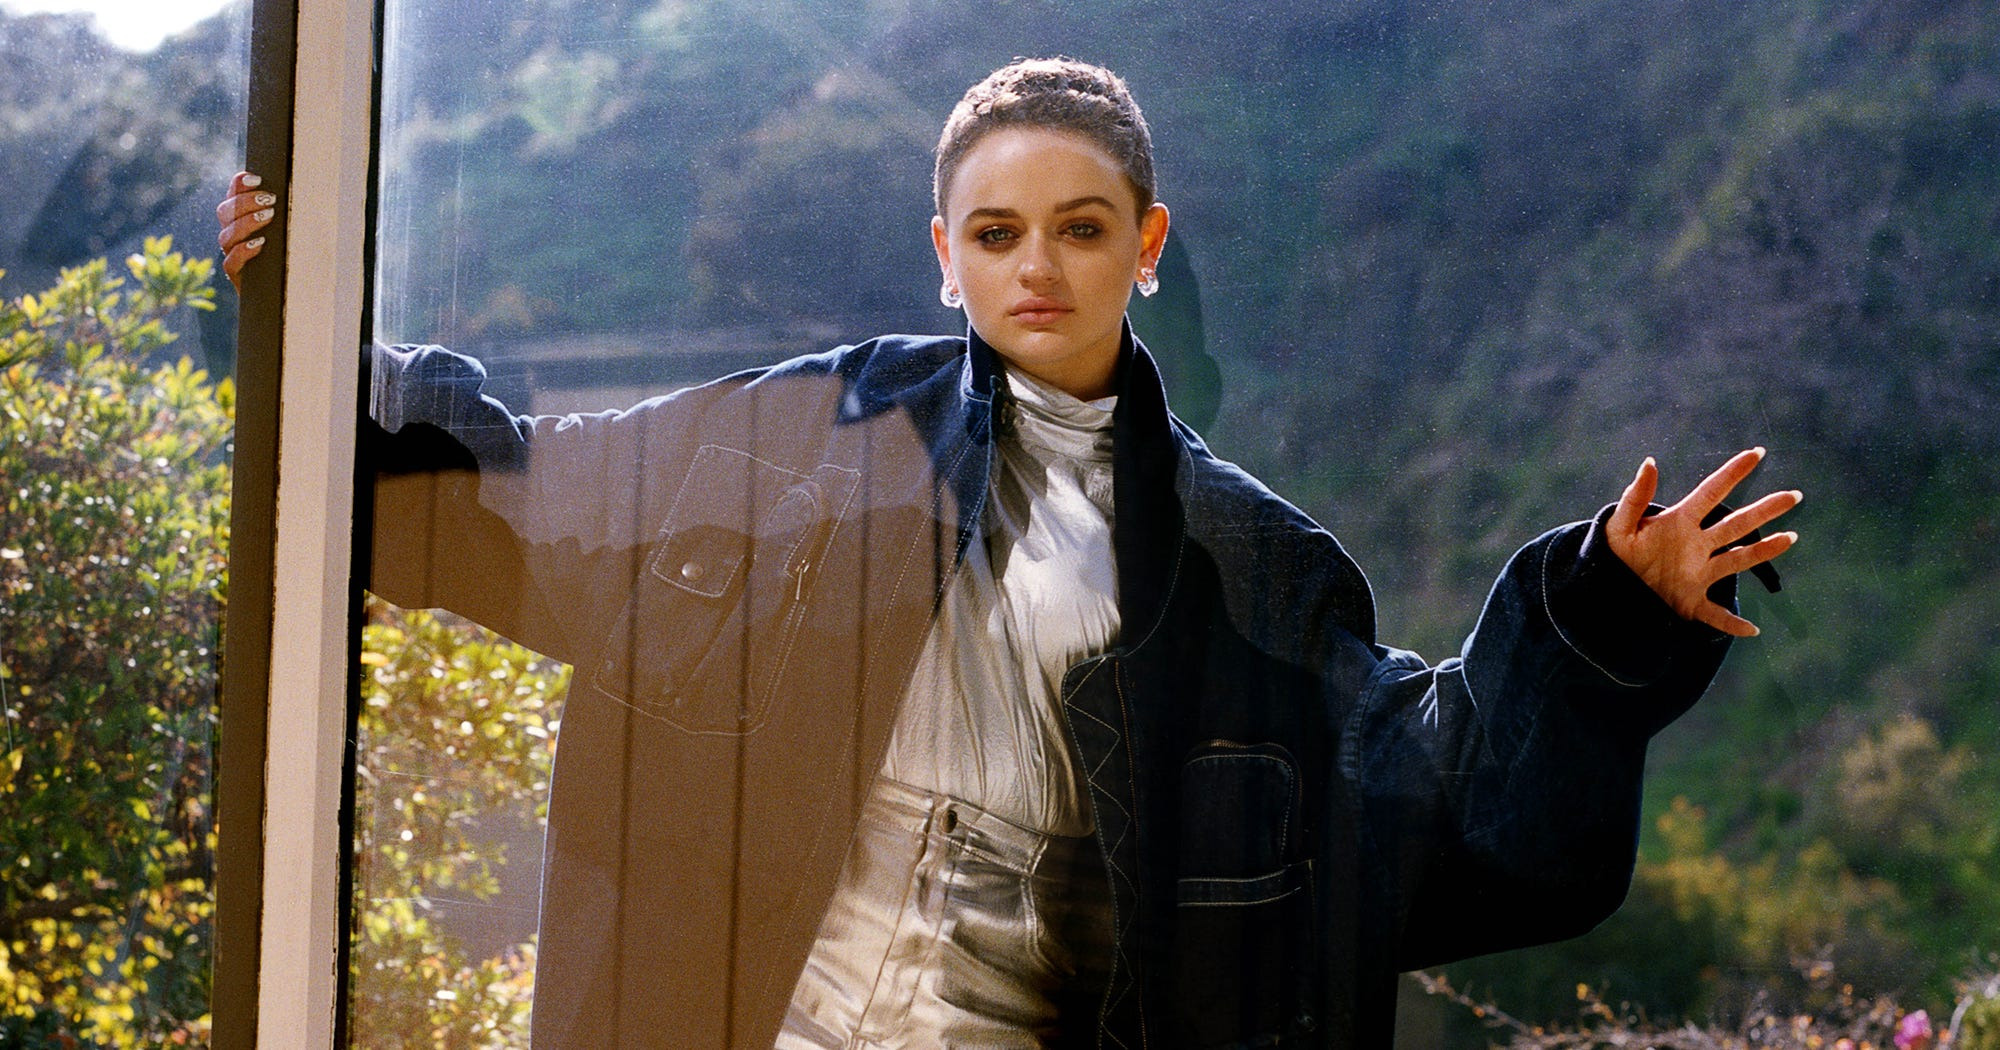 Joey King Interview: The Act Hulu And Kissing Booth 2